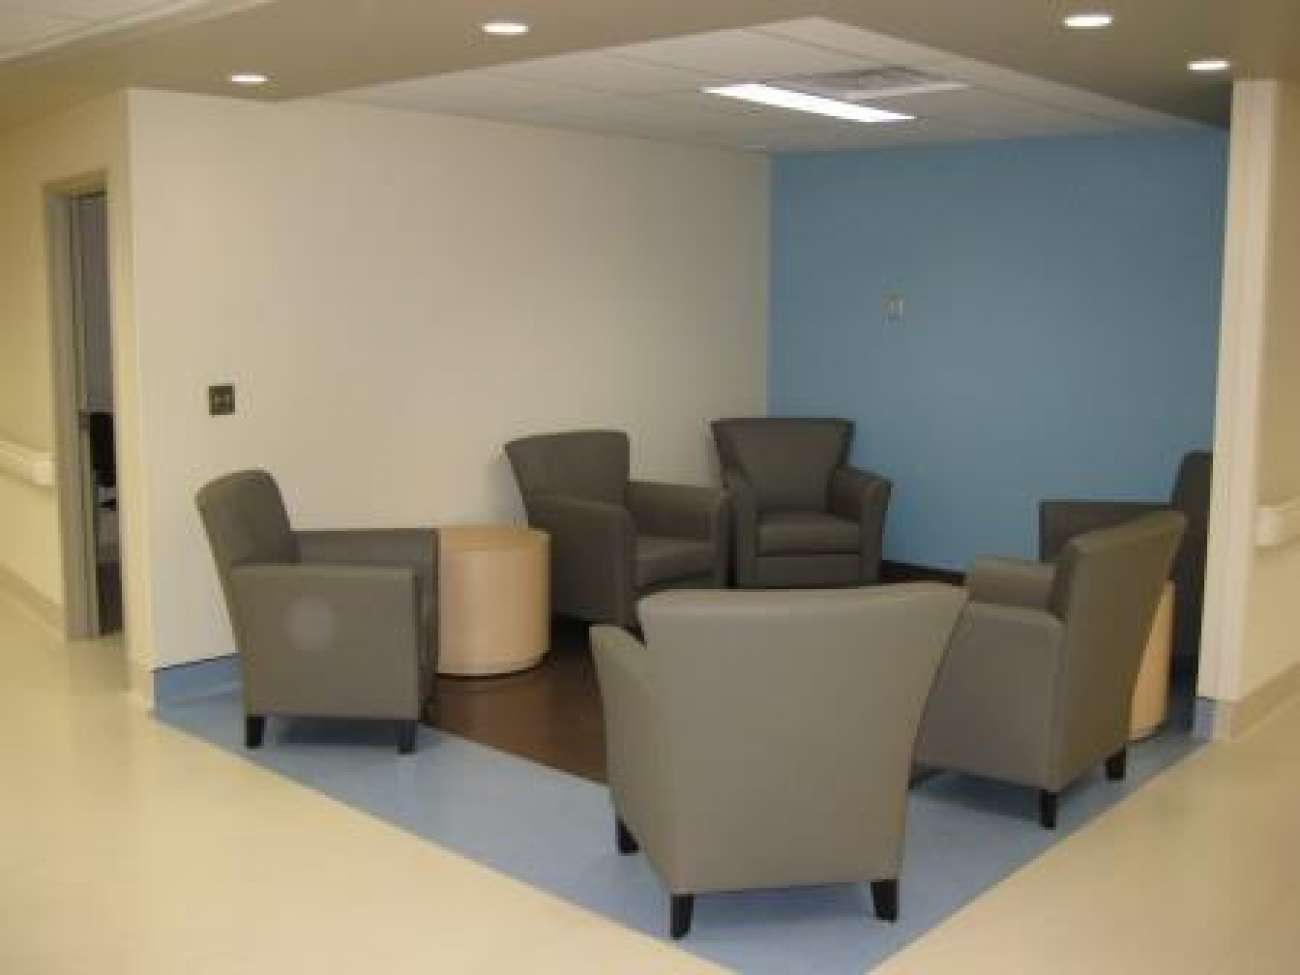 Lounge space in mental health